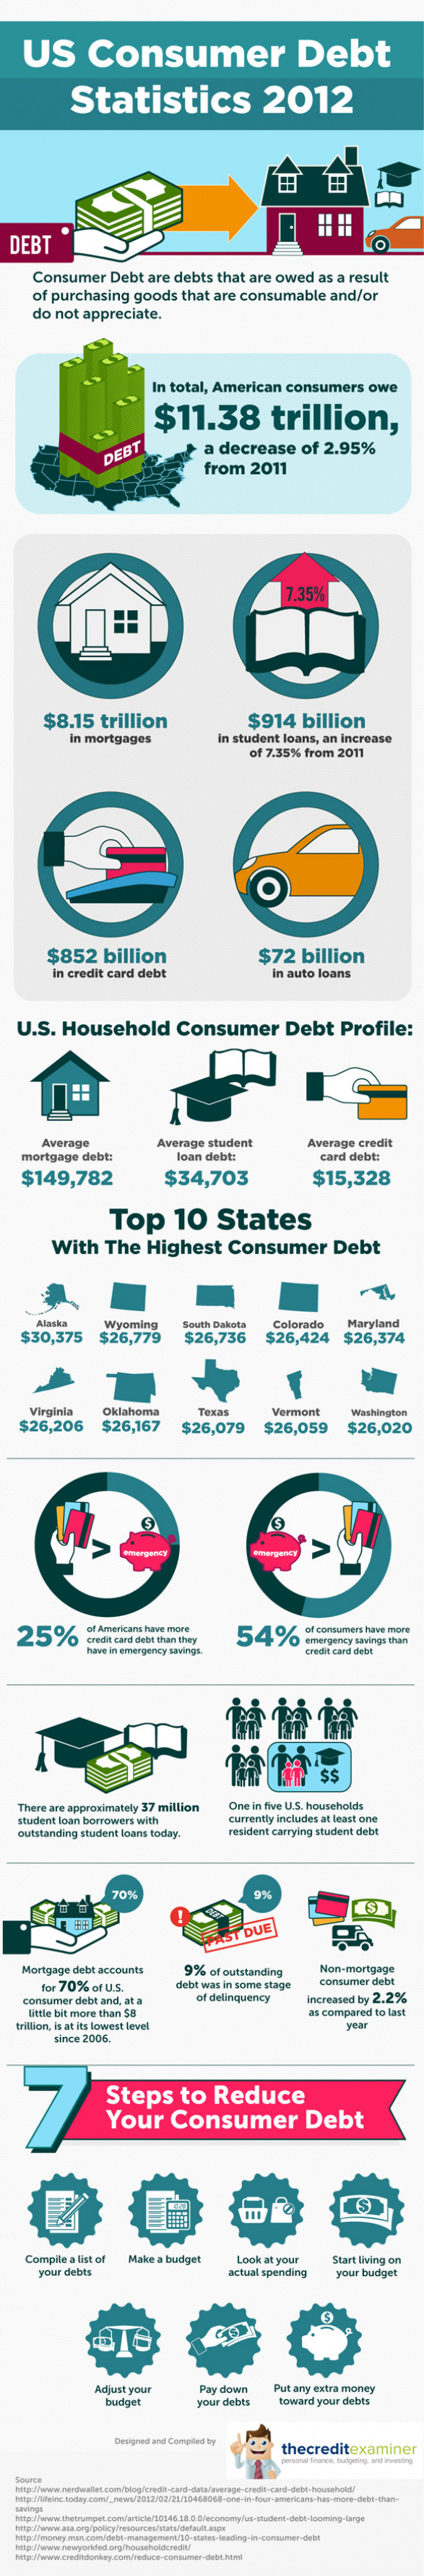 US Consumer Debt Statistics and Trends 2012